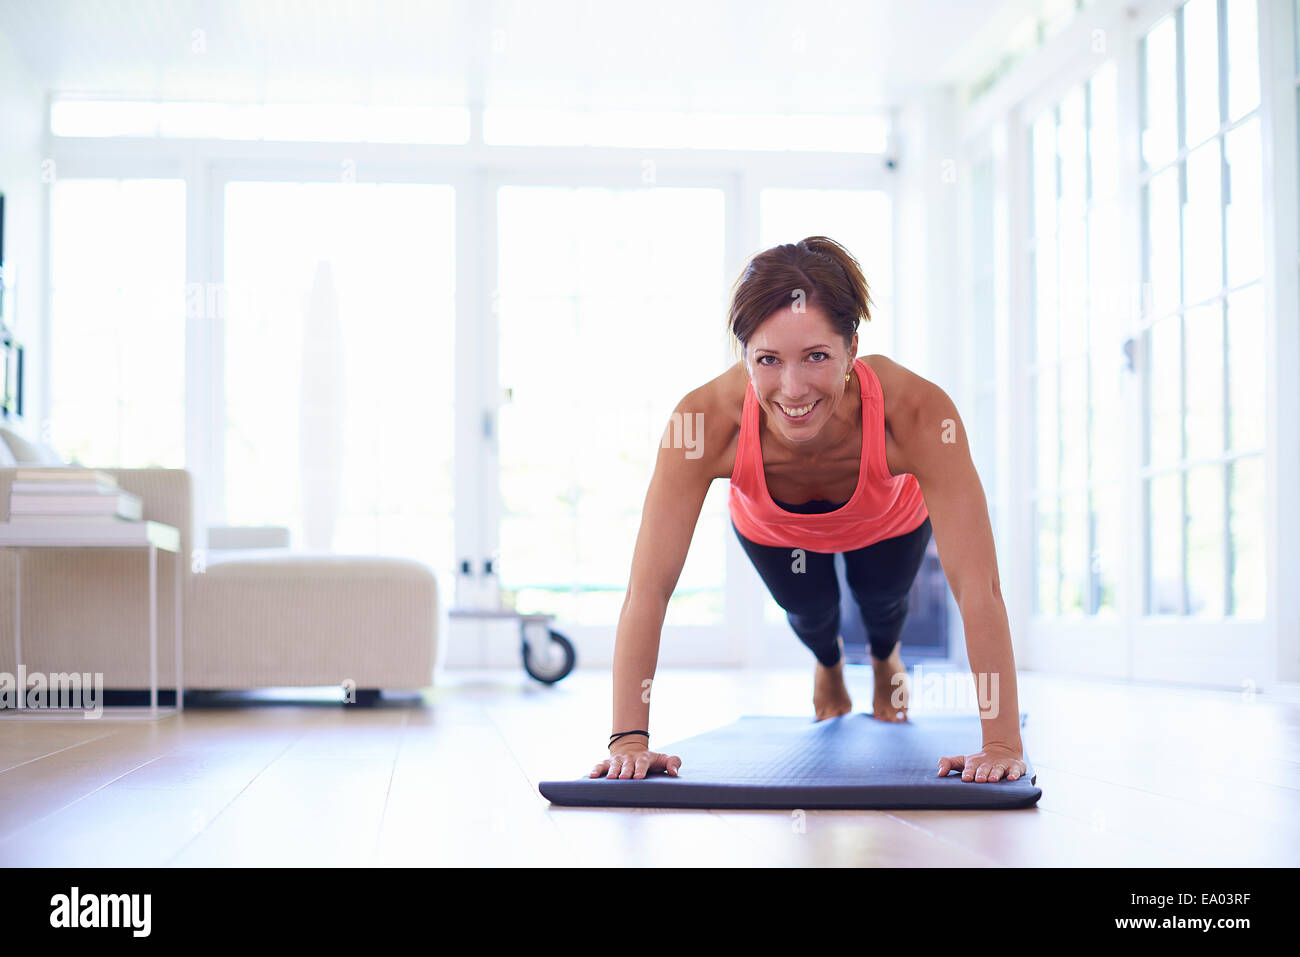 Mid adult woman doing press ups in living room - Stock Image